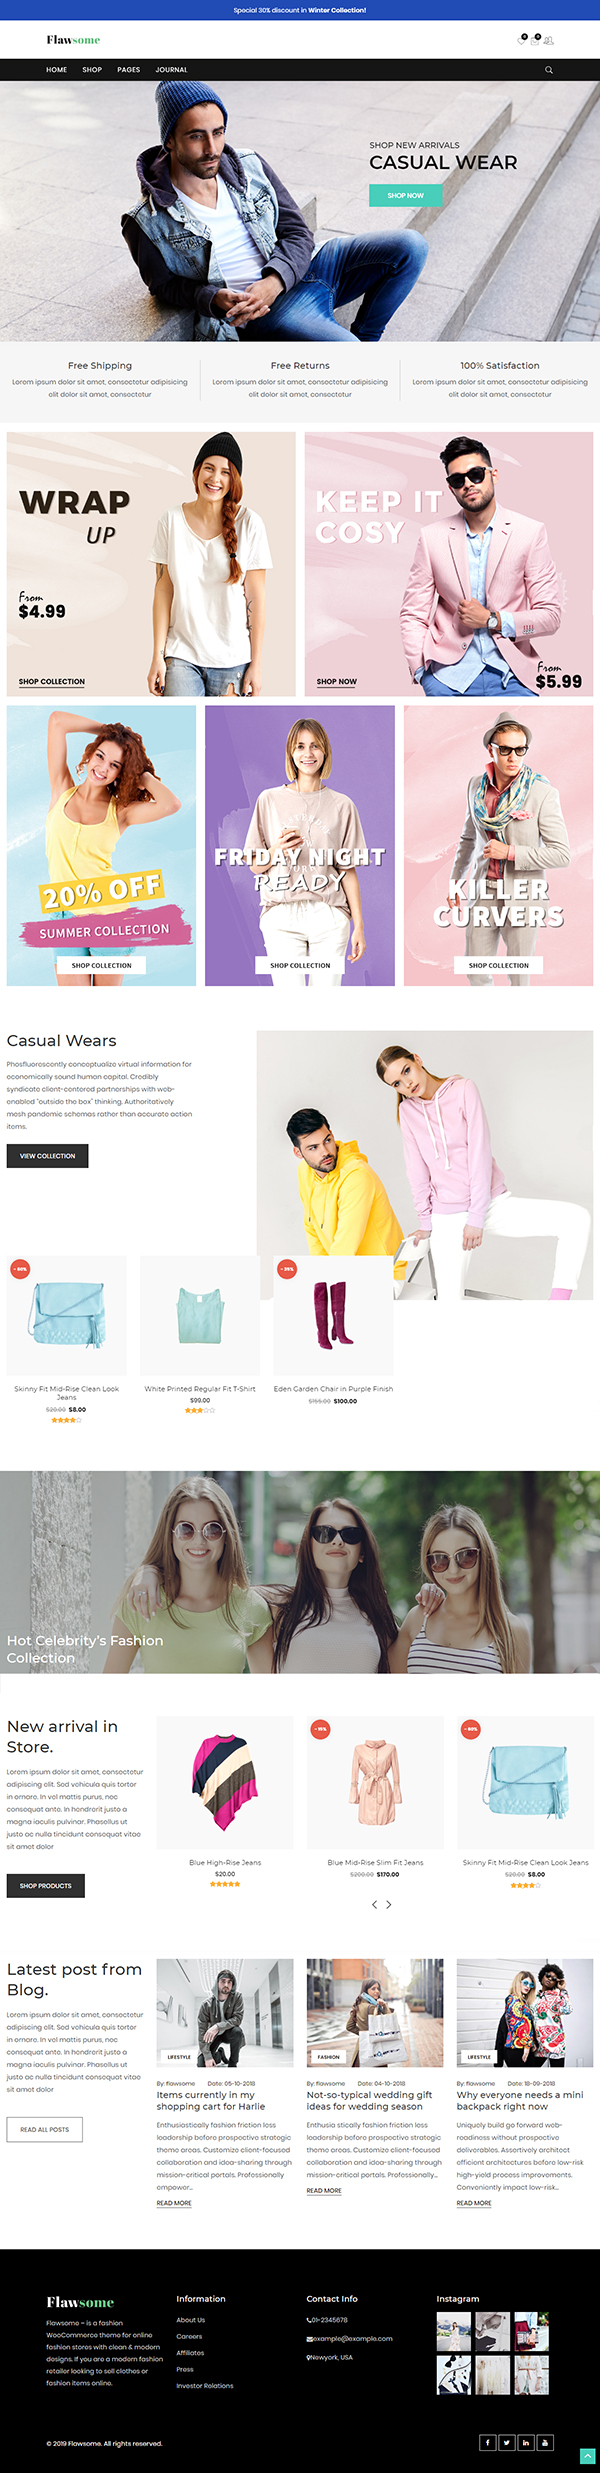 Flawsome - Fashion WordPress Theme